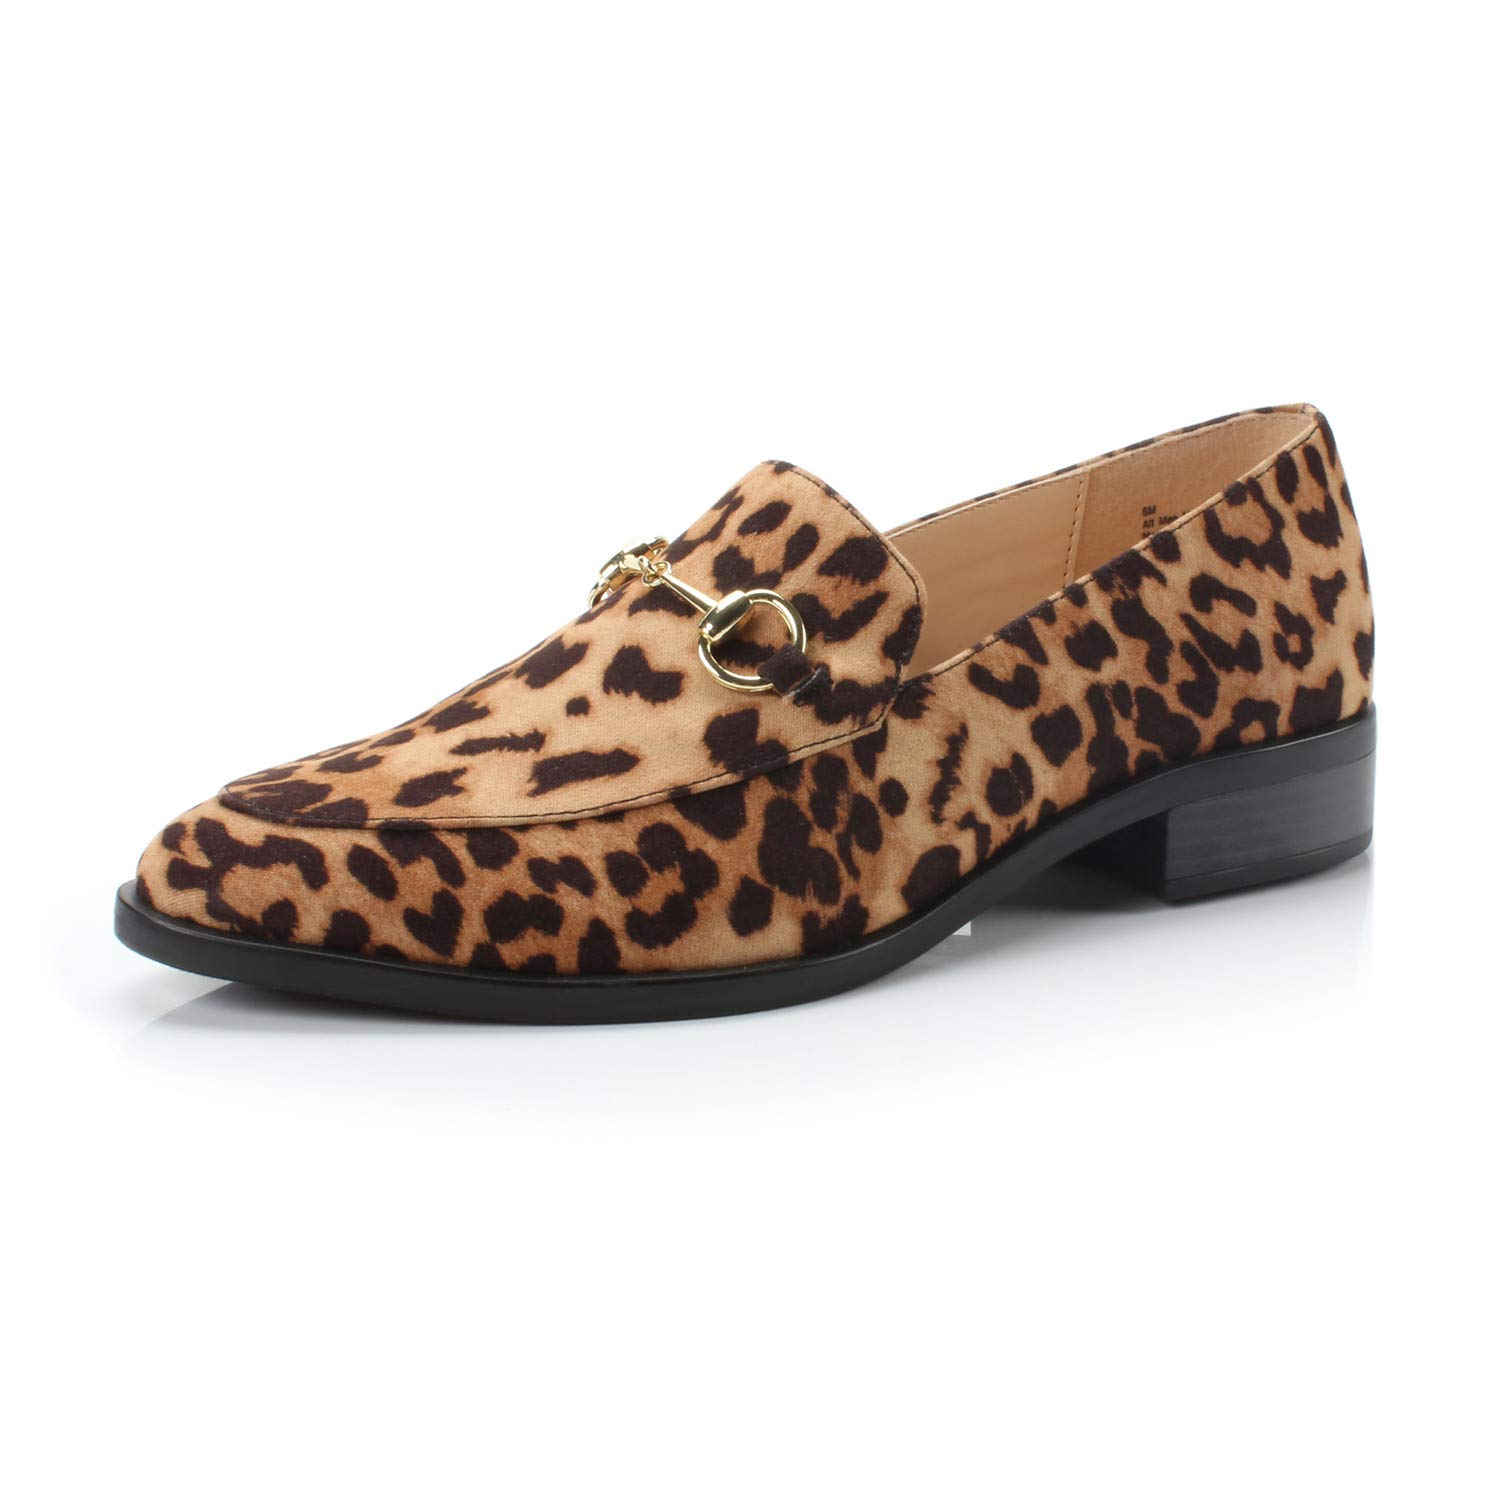 Leopard Fabric DUNION Women's BRINE Comfortable Slip on Chain Decorated Penny Loafers Low Heels Almond Toe Casual Daily shoes